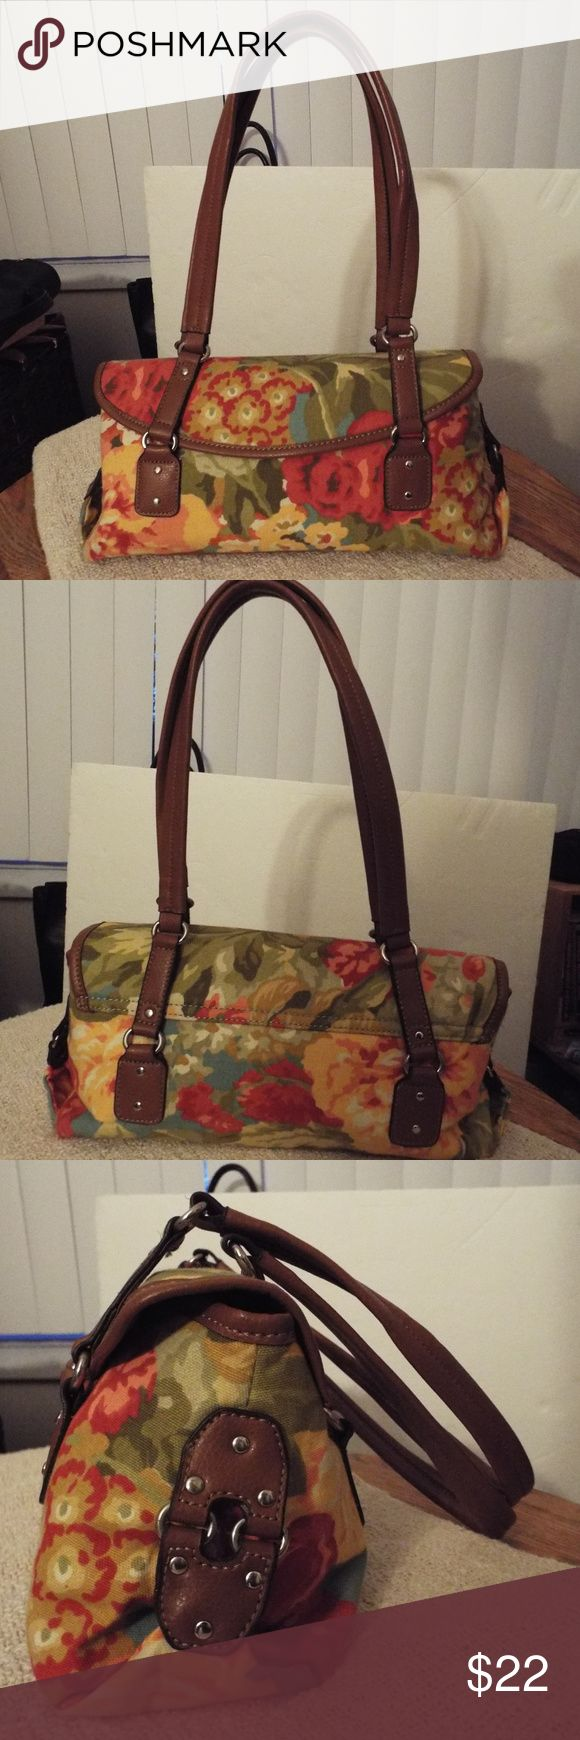 """Relic Floral Shoulder Bag Purse SUPER CUTE!! Colorful canvas floral bag with leather straps and trim /Magnet close  - strap drop 13"""" / 12"""" long / 6"""" high / 4.5"""" wide  INSIDE 1 side zip pocket /2 side pouches / middle zip pocket divider REMOVABLE snaps in! Relic Bags Shoulder Bags"""